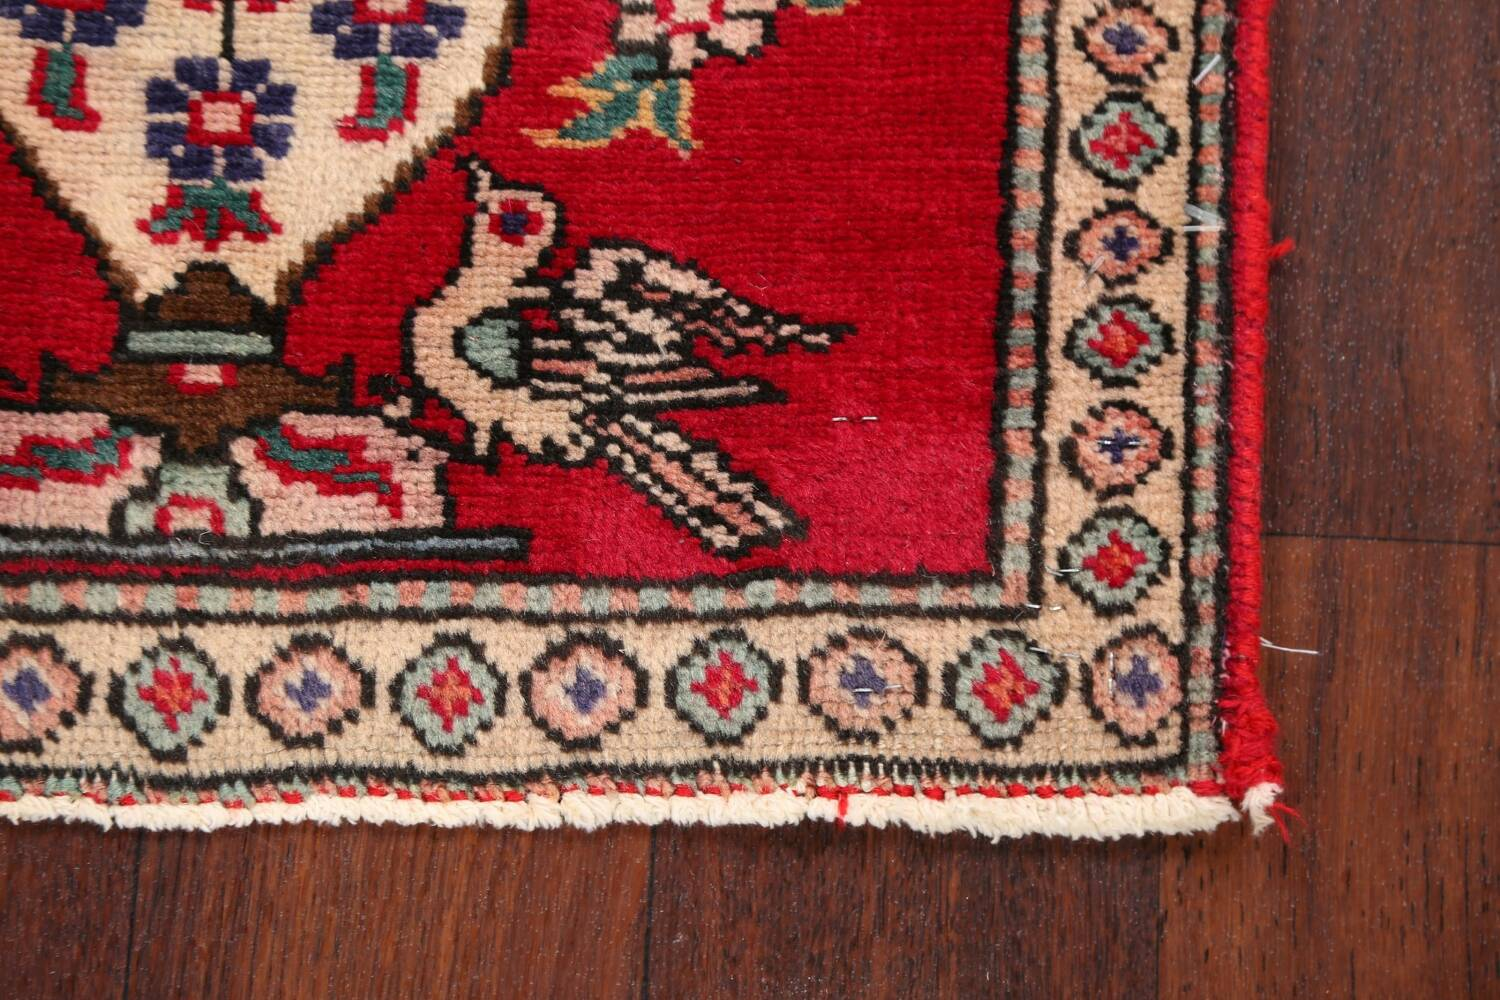 Animal Pictorial Red Tabriz Persian Area Rug 2x2 image 6